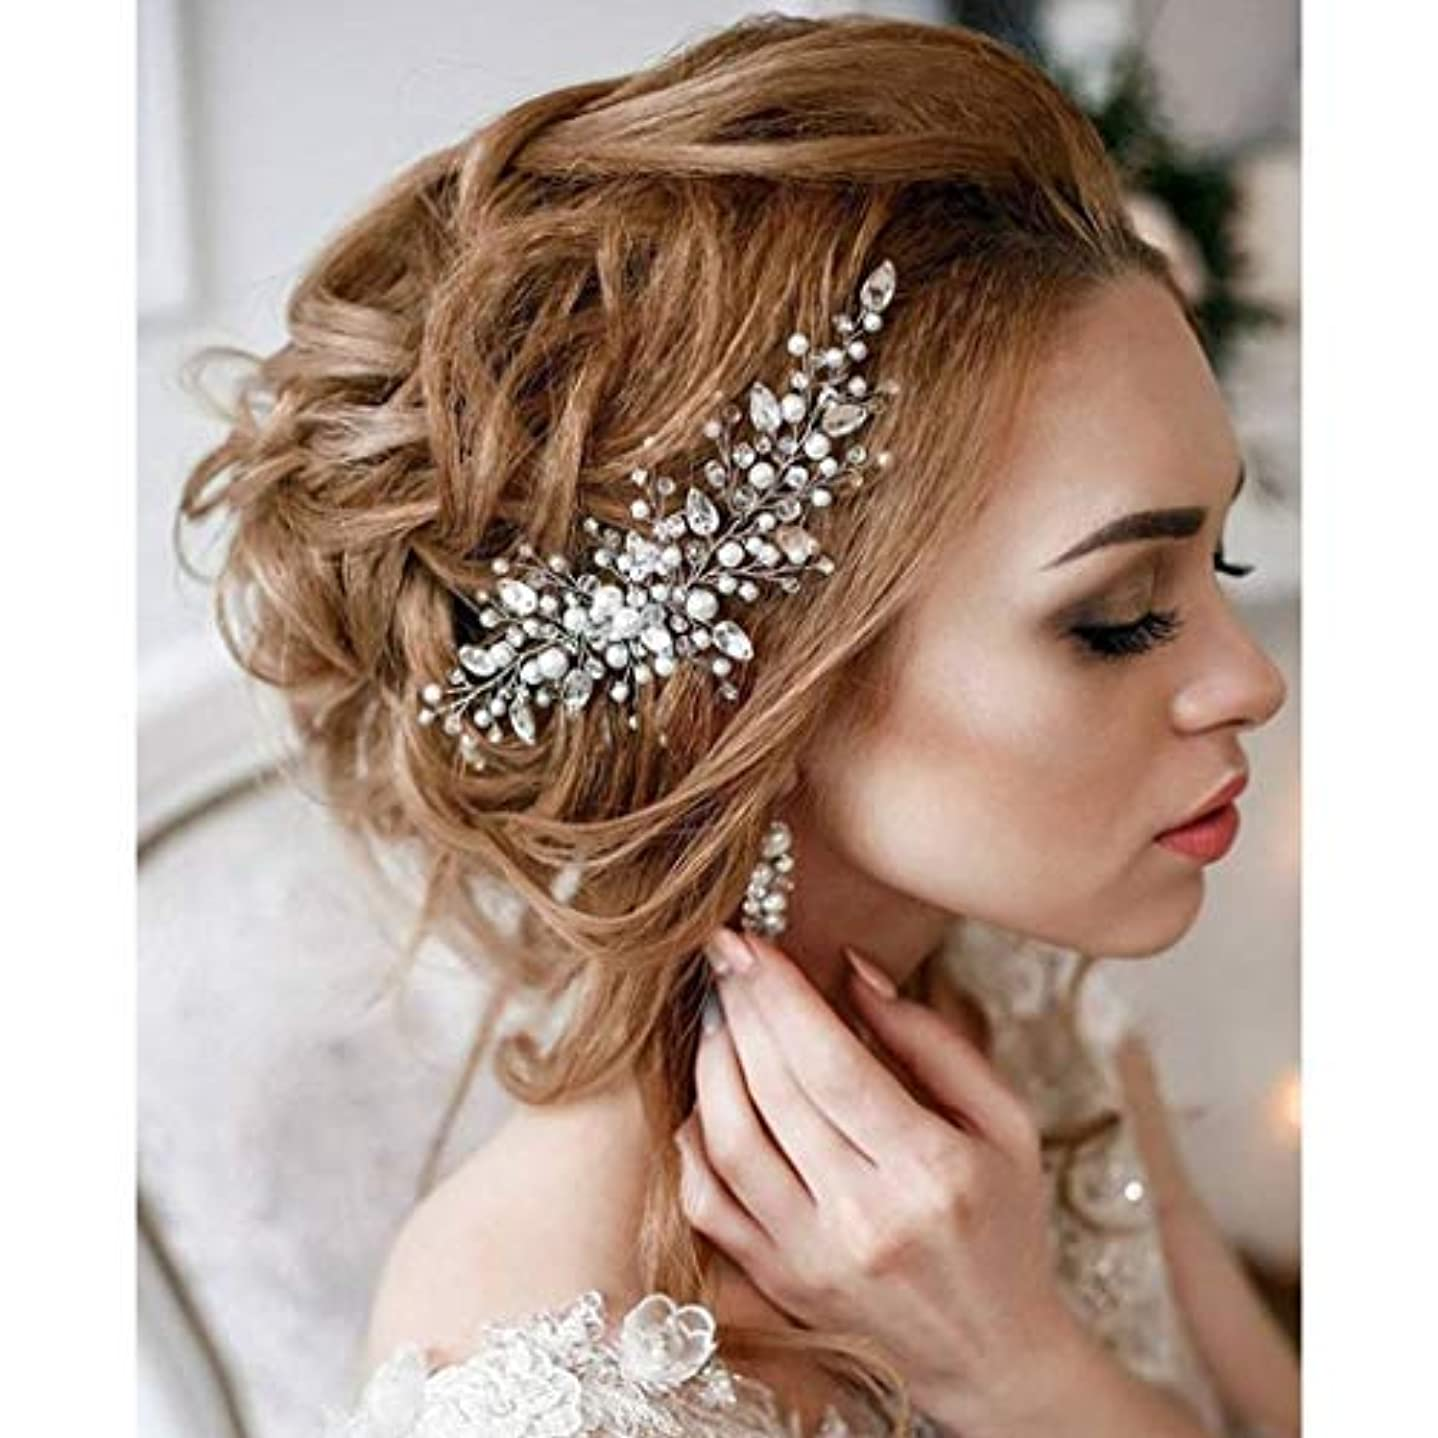 伝記魅惑的なAukmla Bride Wedding Hair Combs Bridal Hair Accessories Decorative for Brides and Bridesmaids [並行輸入品]